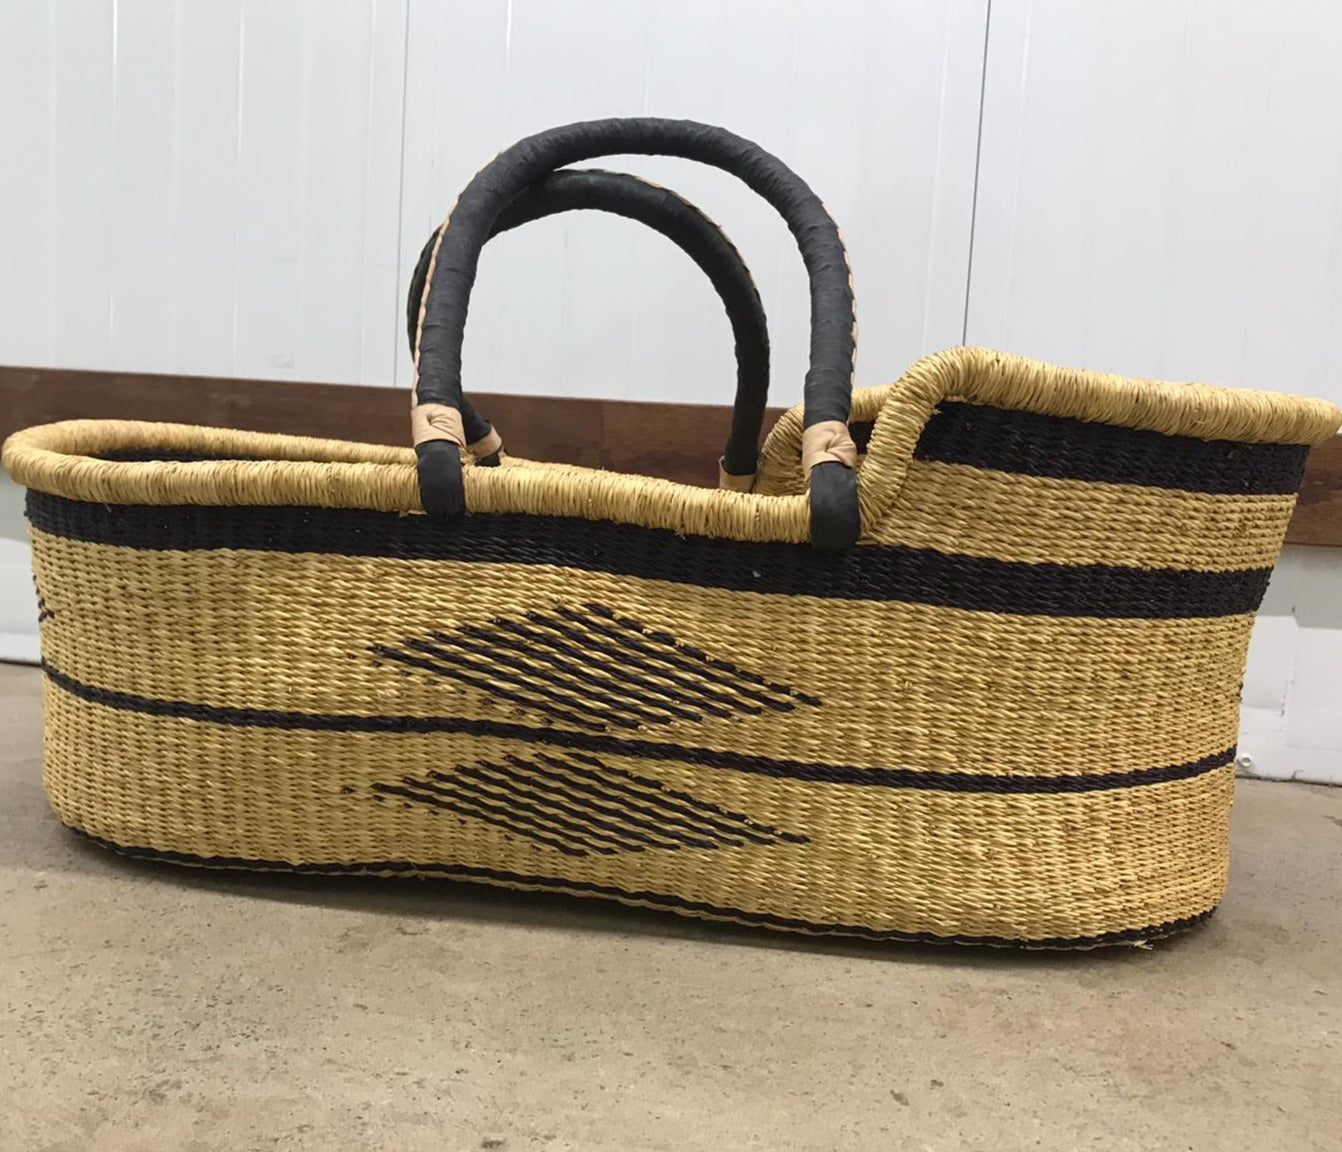 Baby Moses Pattern Basket - Natural Black Handles